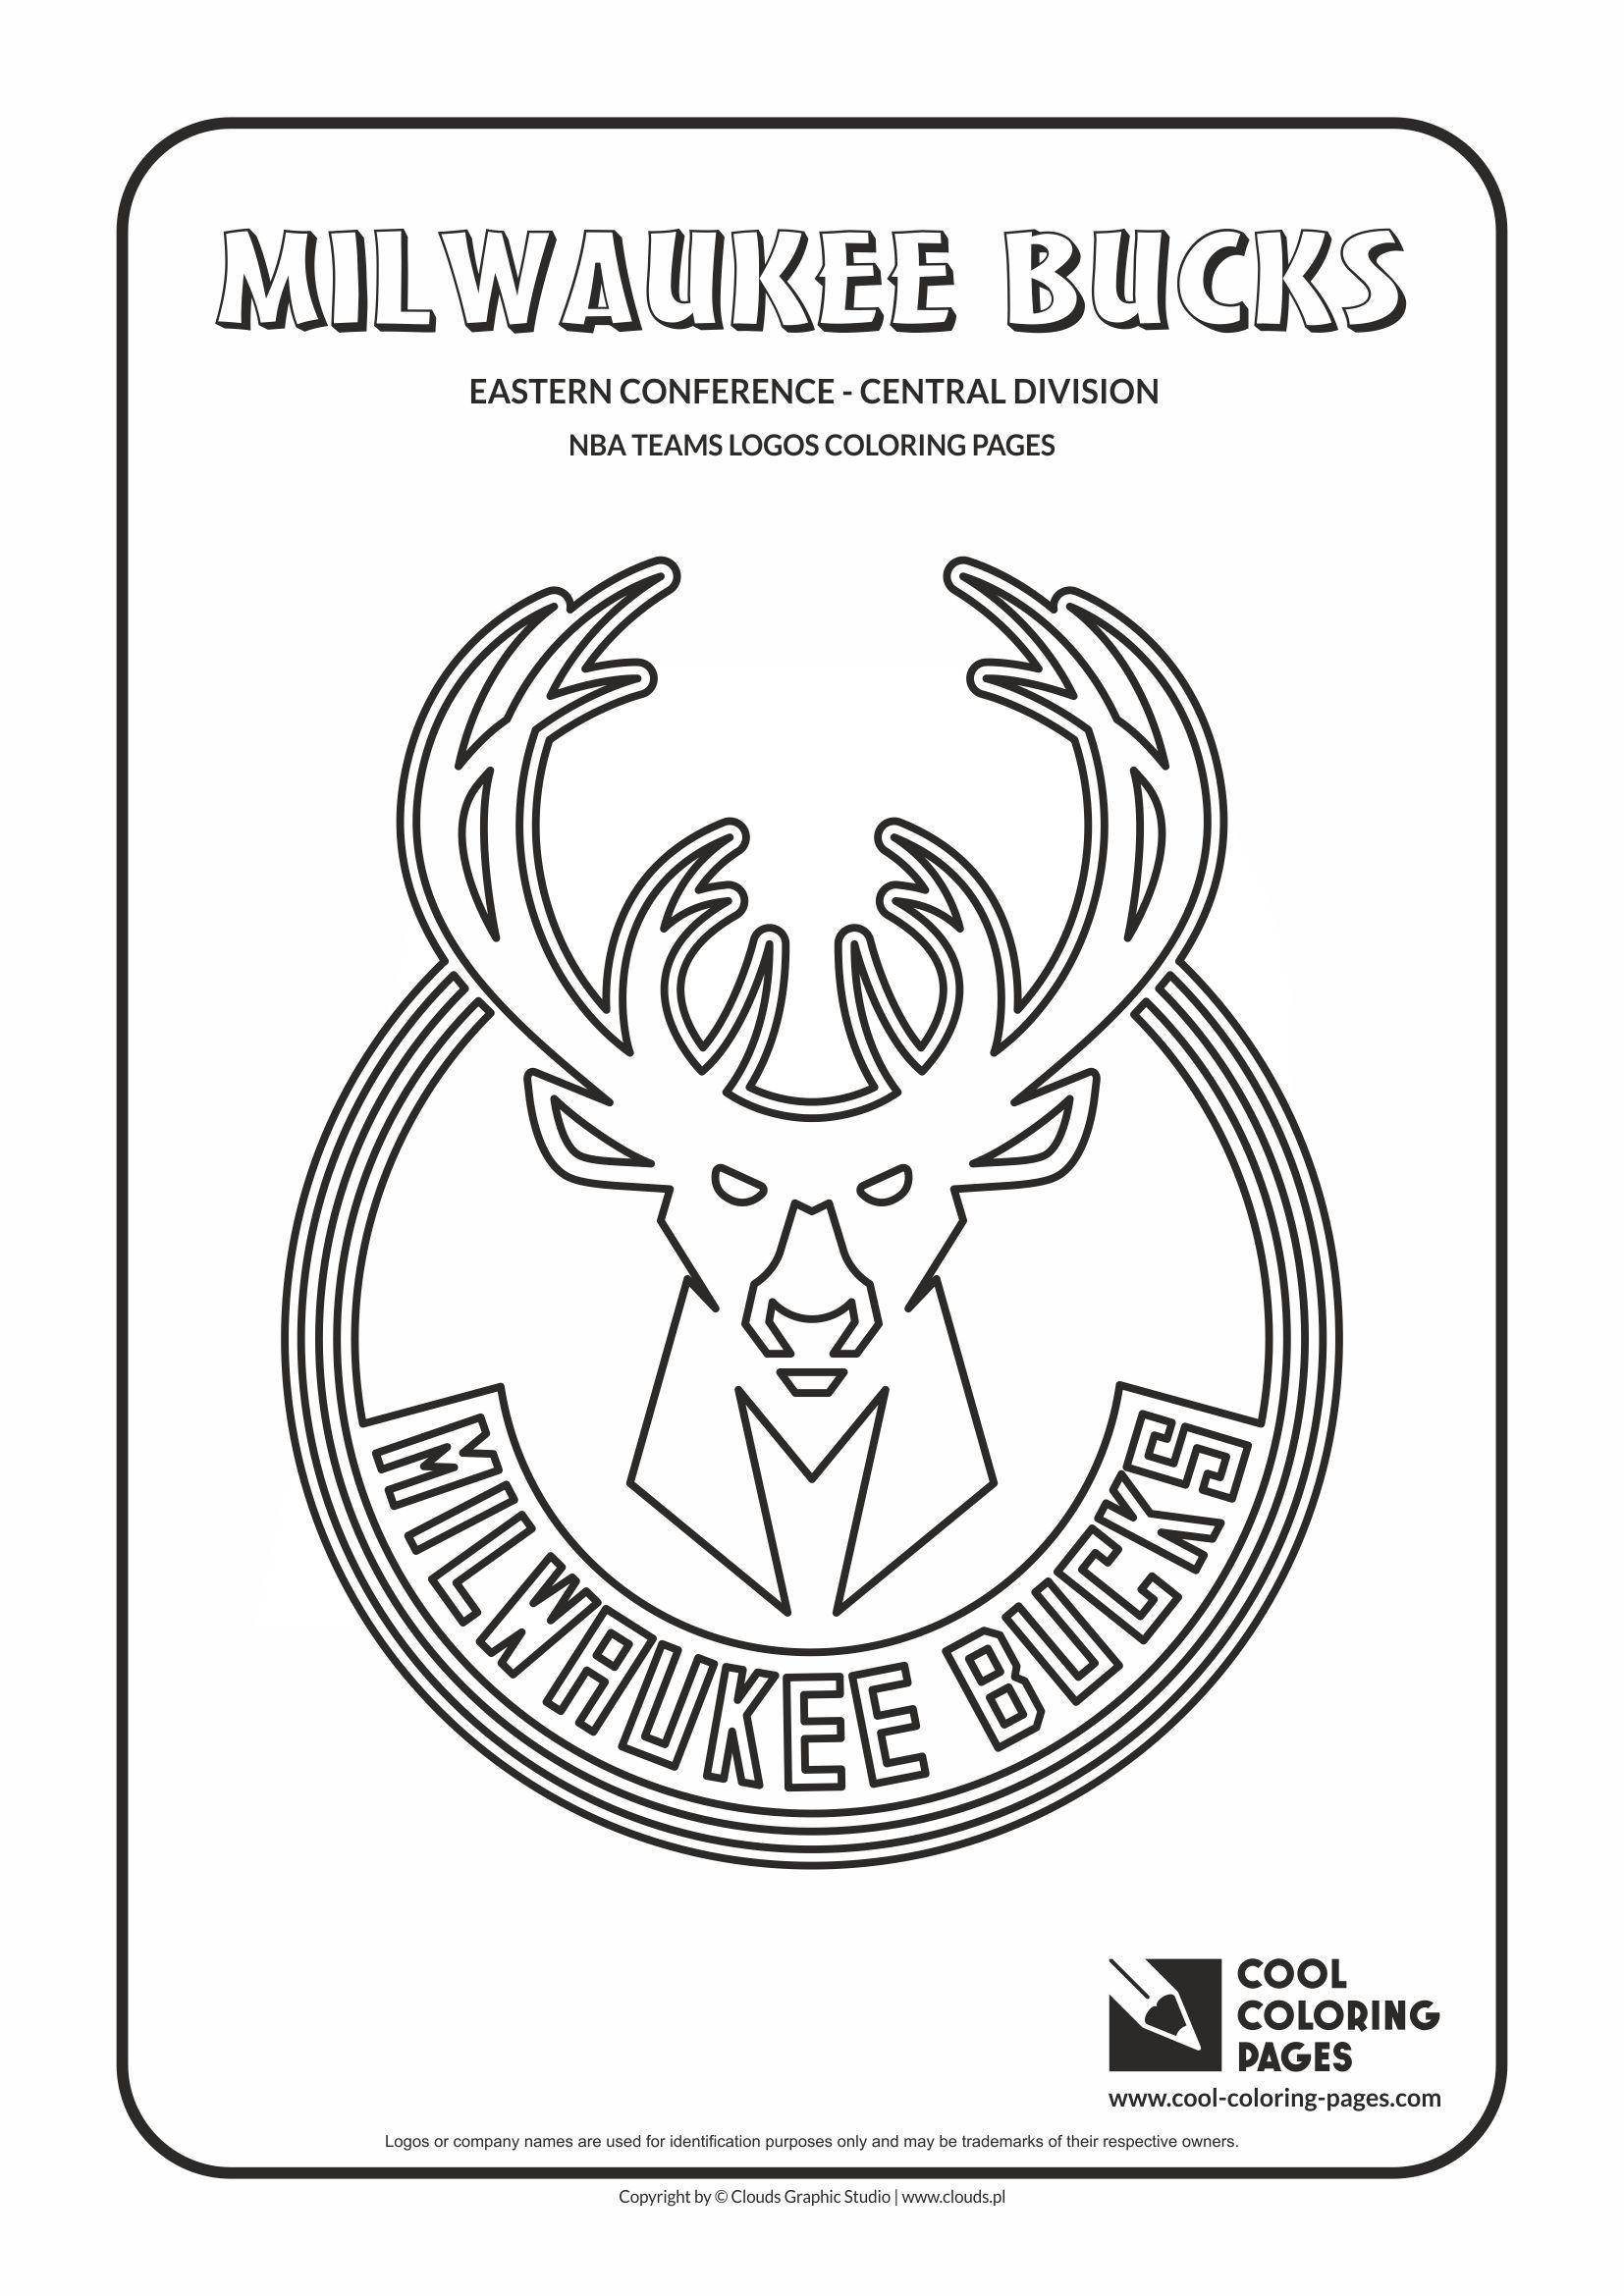 cool coloring pages nba teams logos milwaukee bucks logo coloring page